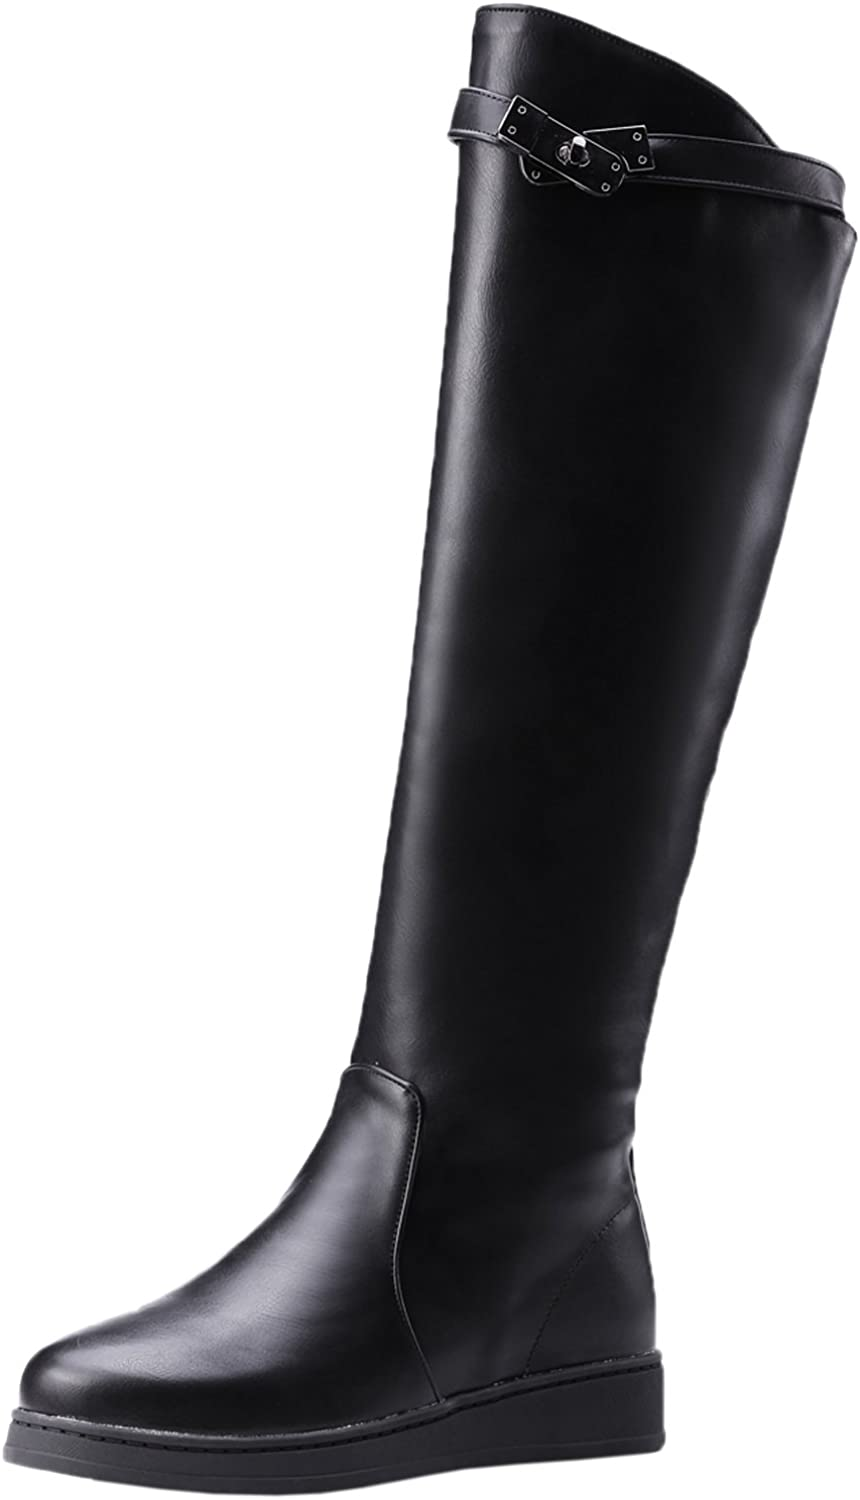 BIGTREE Riding Boots Women Fall Winter Strap Black Flat Warm Casual Comfortable Knee High Boots